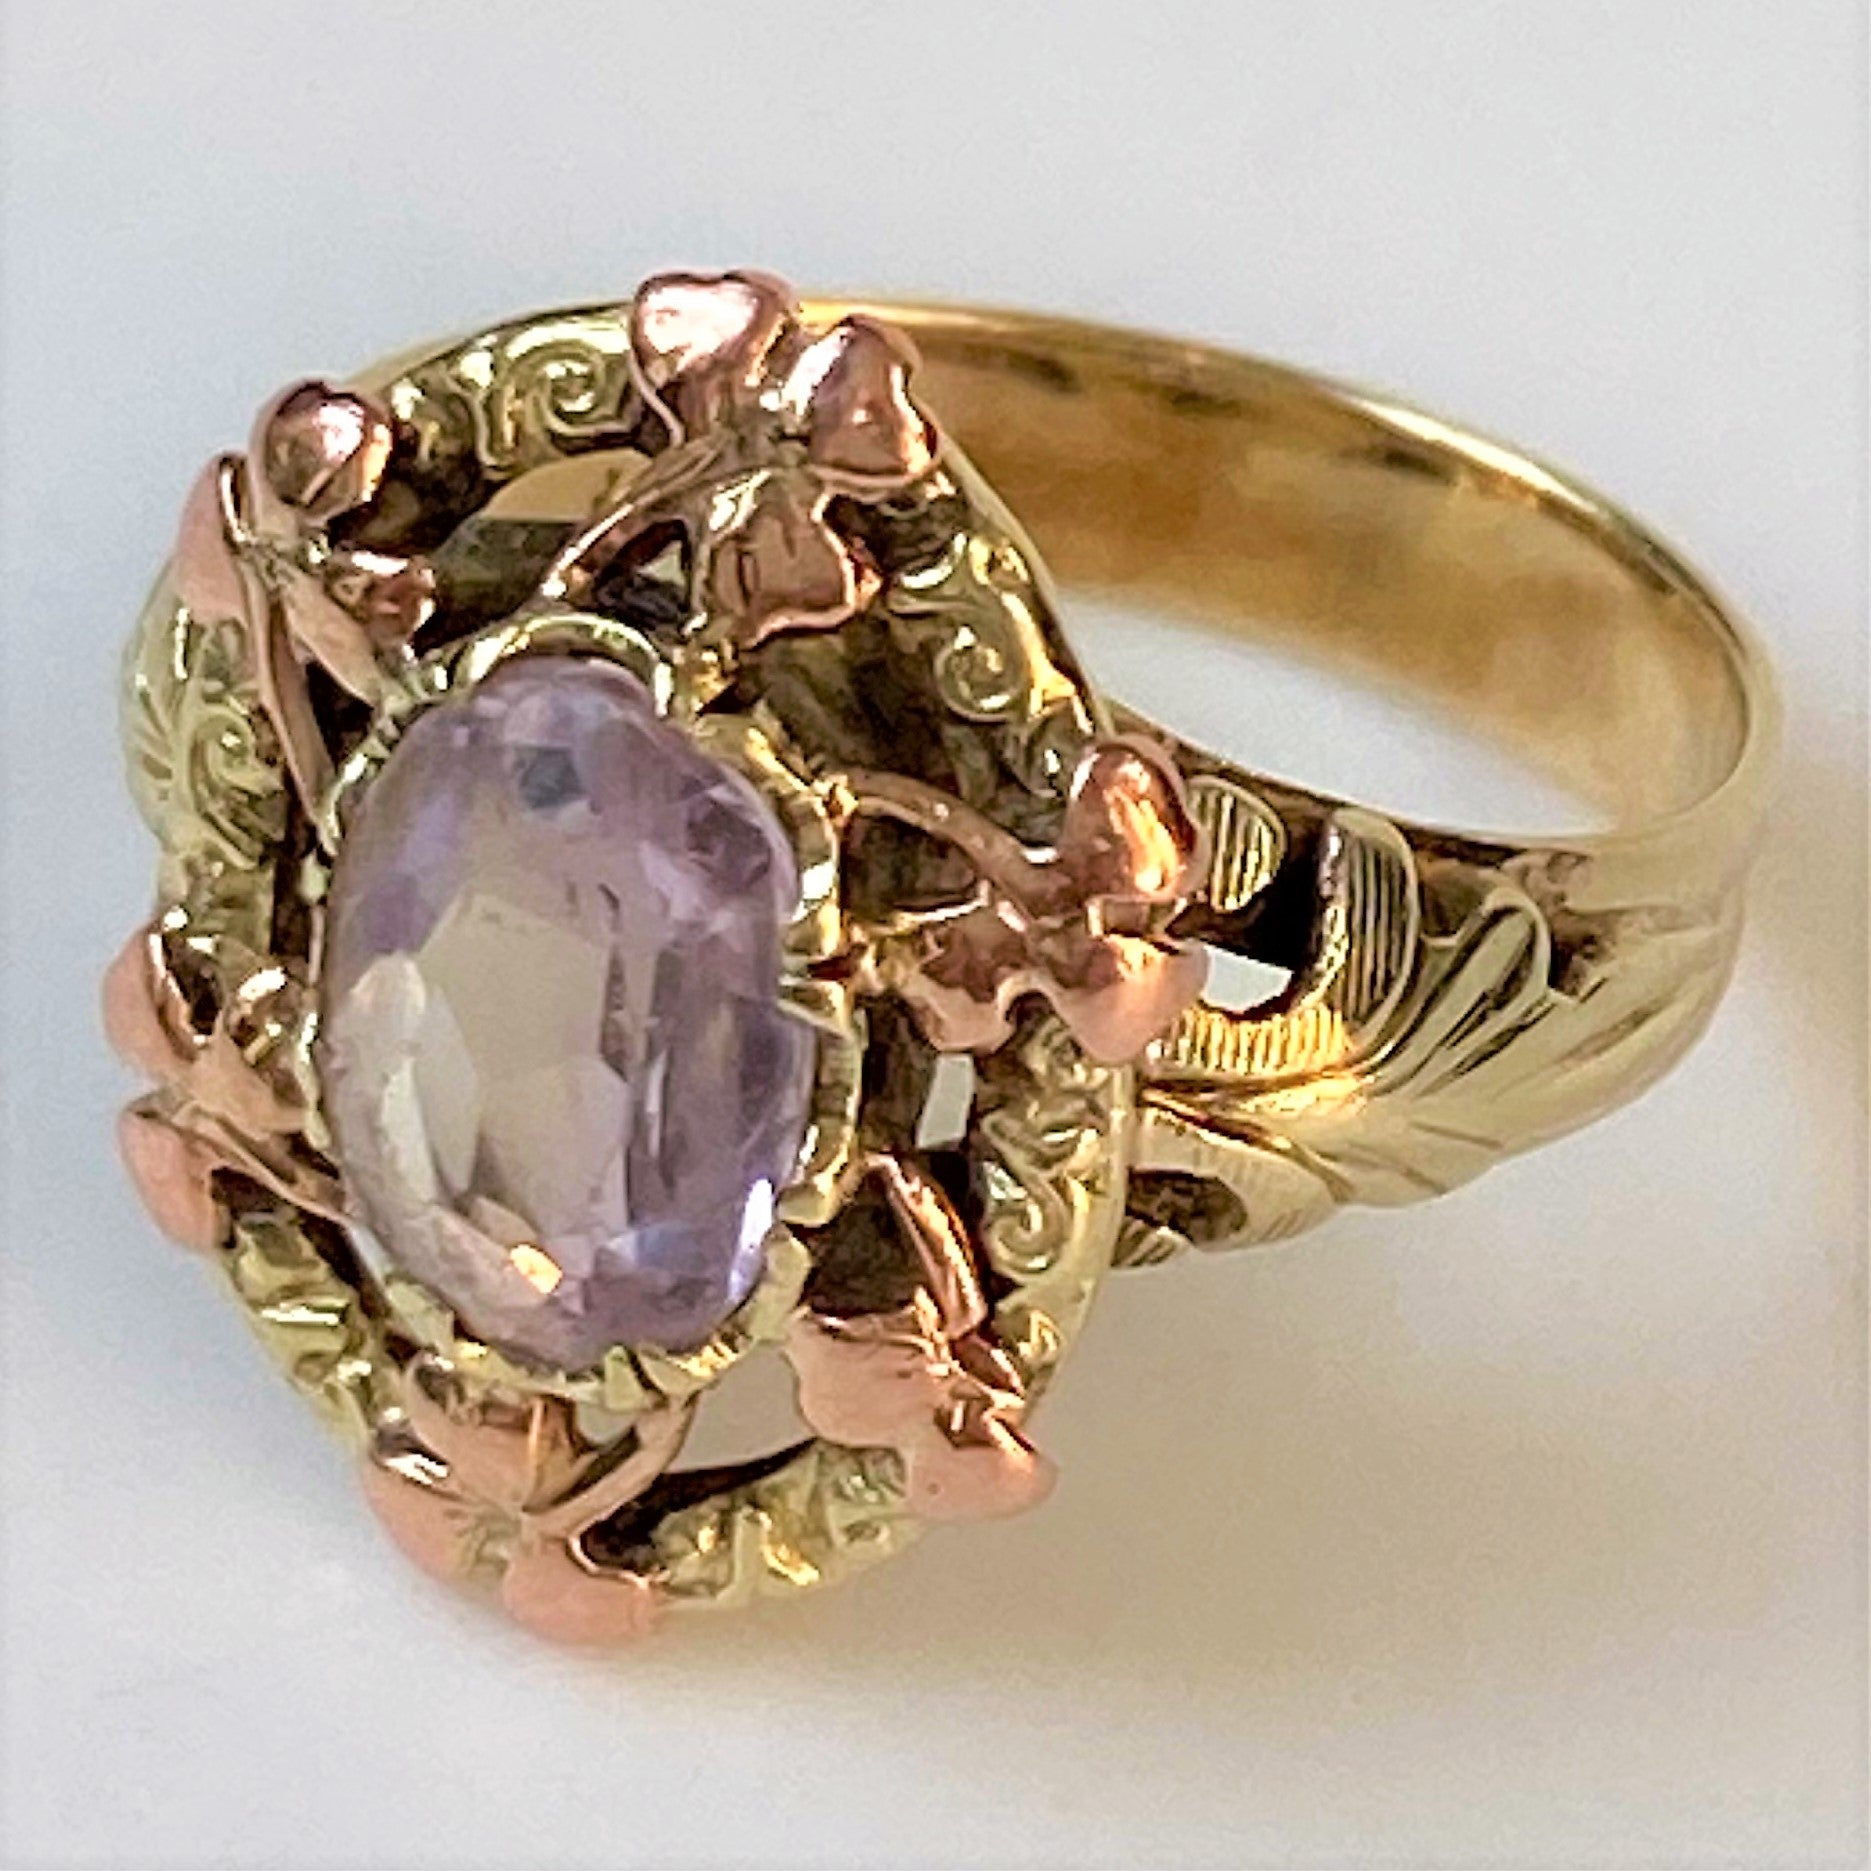 Antique 14ct Gold and Rose Quartz Ring